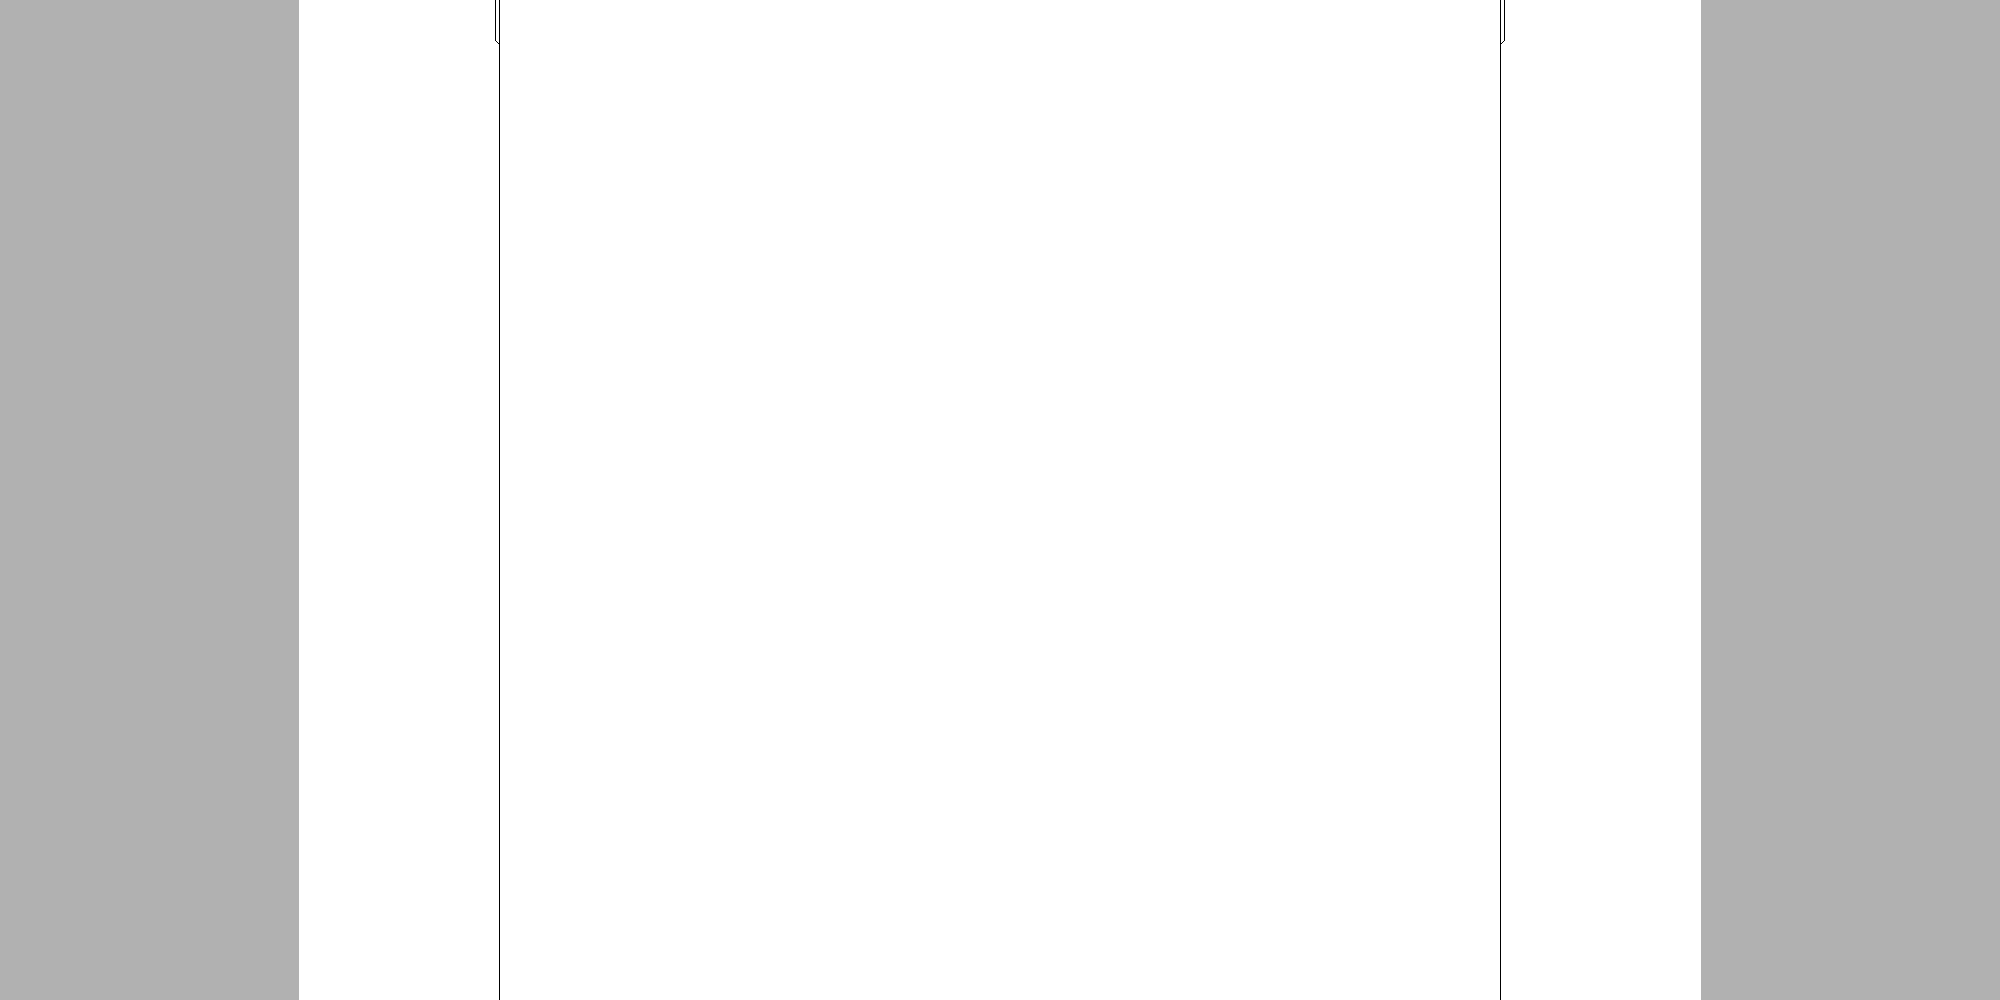 Letterbox png. Image background template bleach